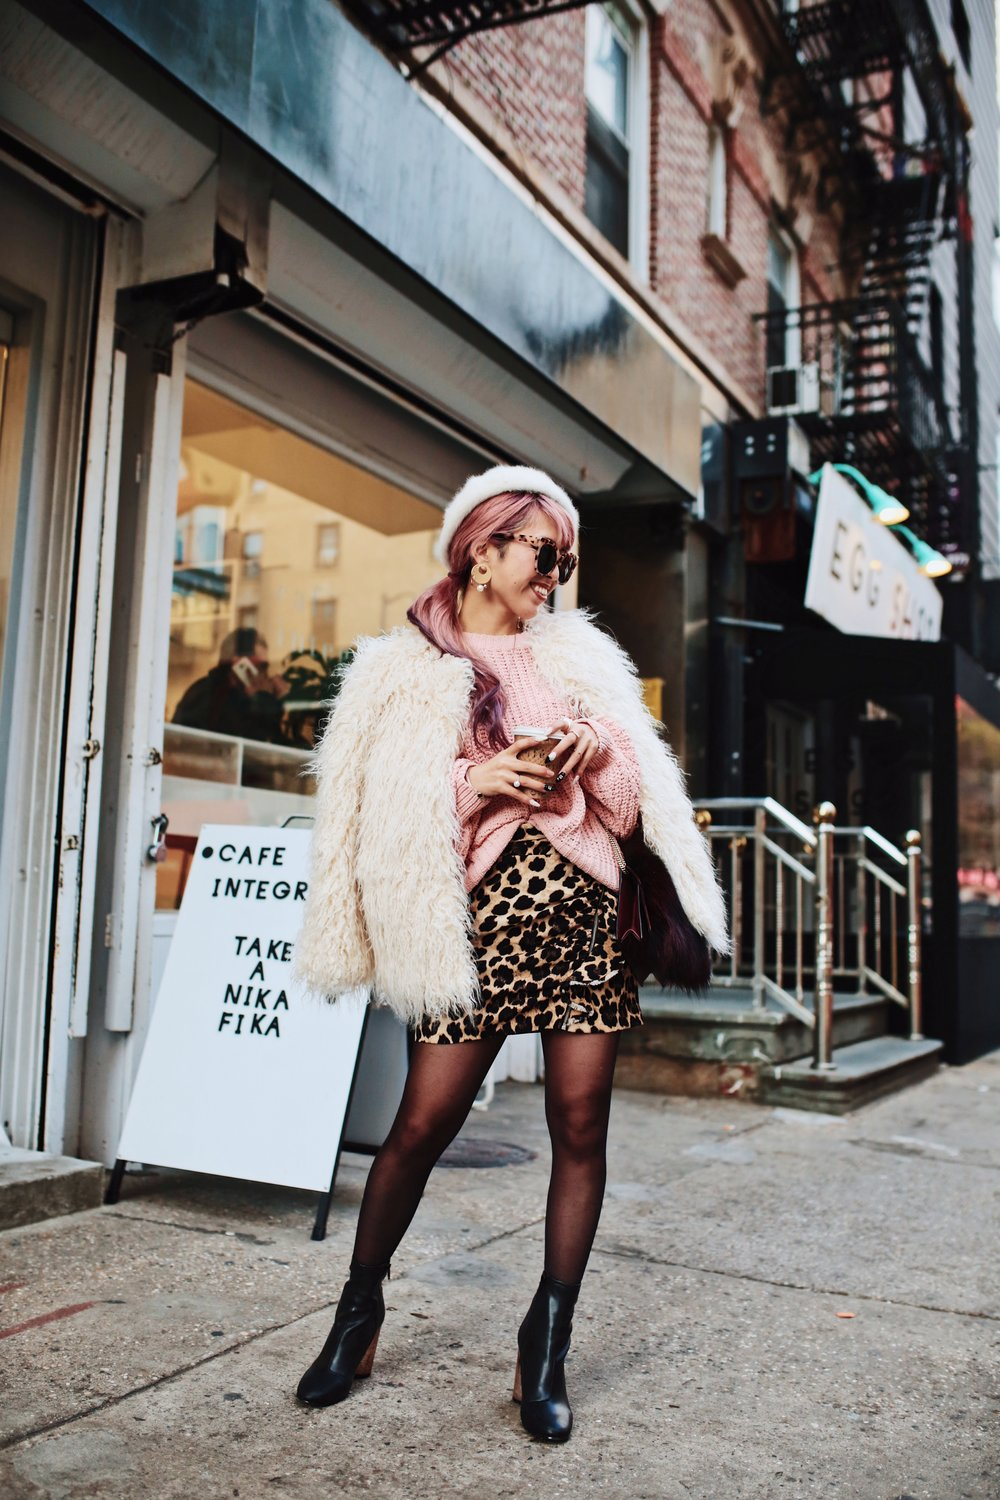 H&M Pink Sweater-Zara leopar prins mini skirt-H&M white shaggy coat-DVF fur bag-anthropologie white beret-Urban Outfitters Sunglasses-ALDO Ankle Boots-Mango Earrings-Aikas Love Closet-New York City-Pink Hair-Style Fashion Blogger-Seattle-Japanese_Petite fashion blogger 7